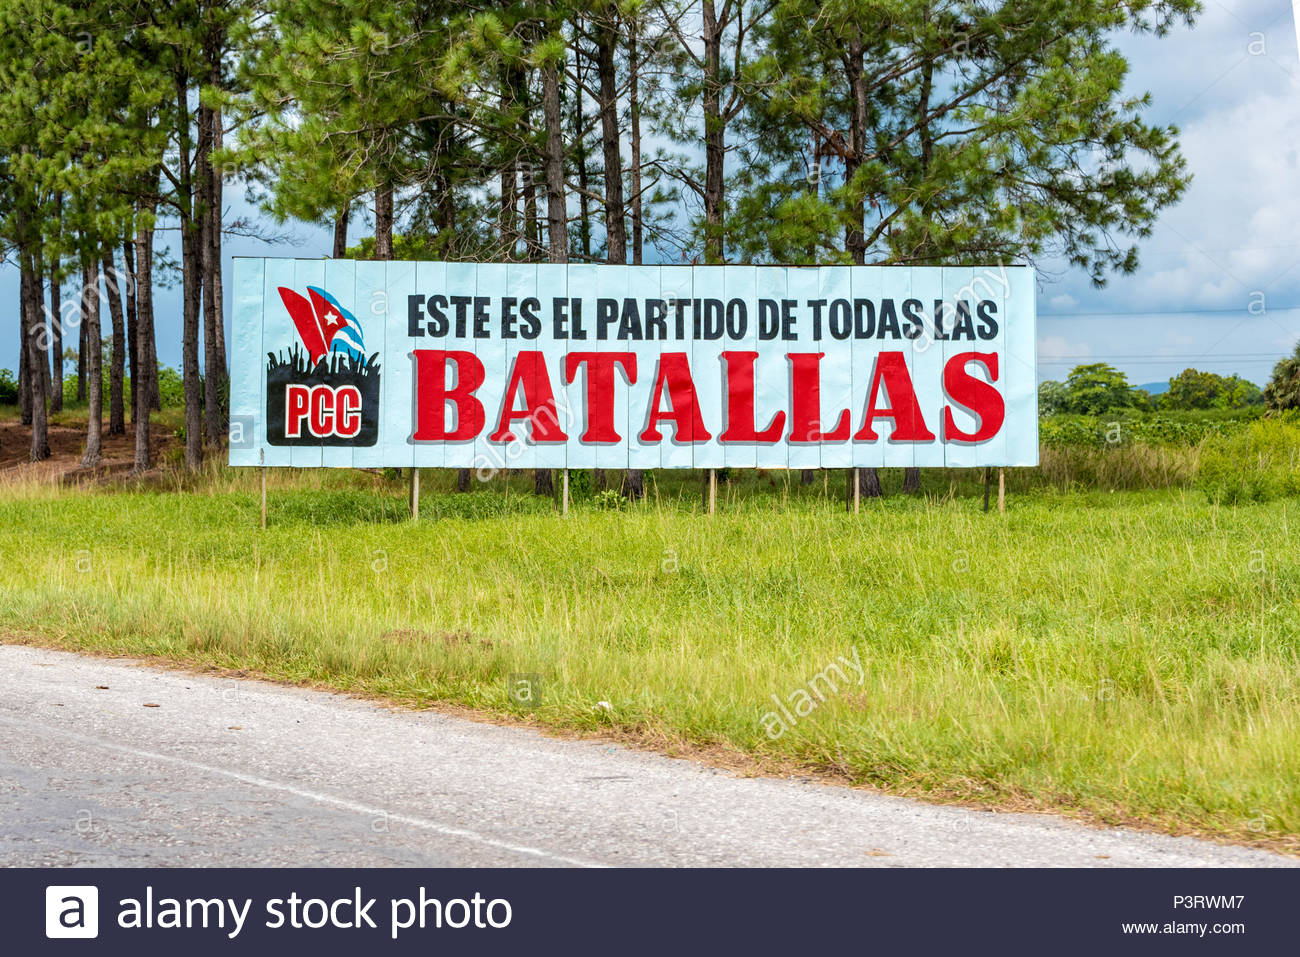 Cuban Communist Party propaganda sign or billboard in Pinar del Rio,Cuba. The sign reads: This is the party of all battles. Stock Photo